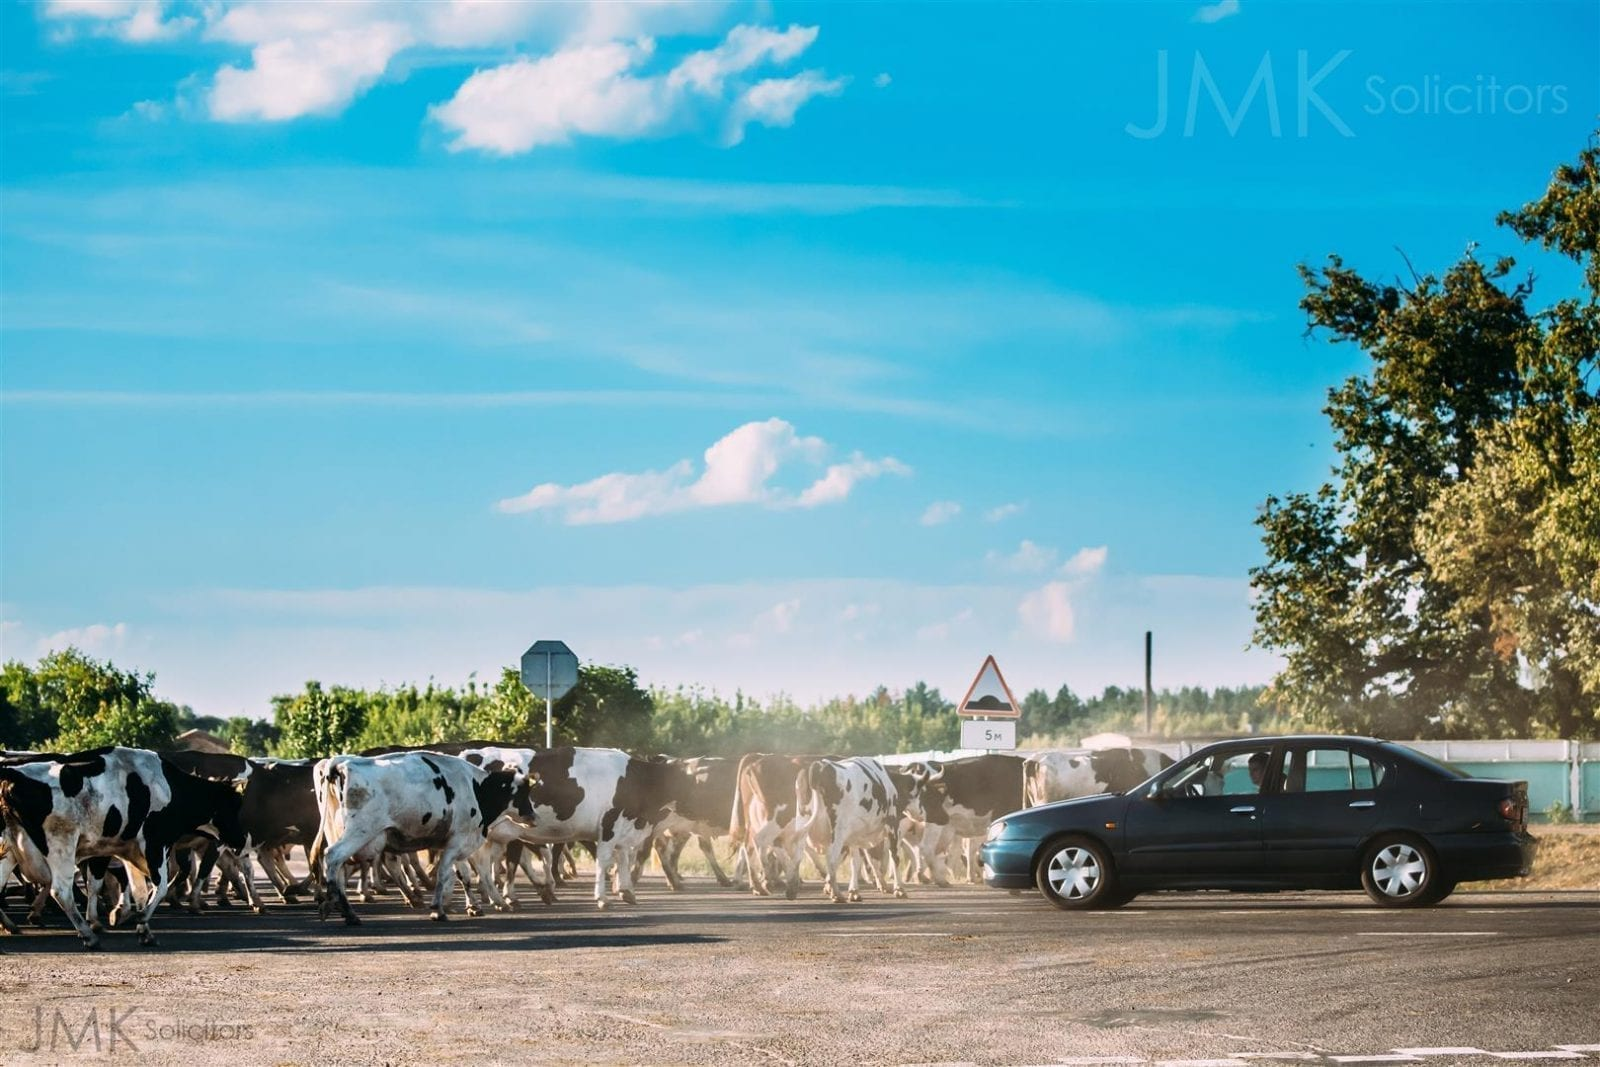 JMK Solicitors - Tips If You Are Involved In A Road Accident With An Animal